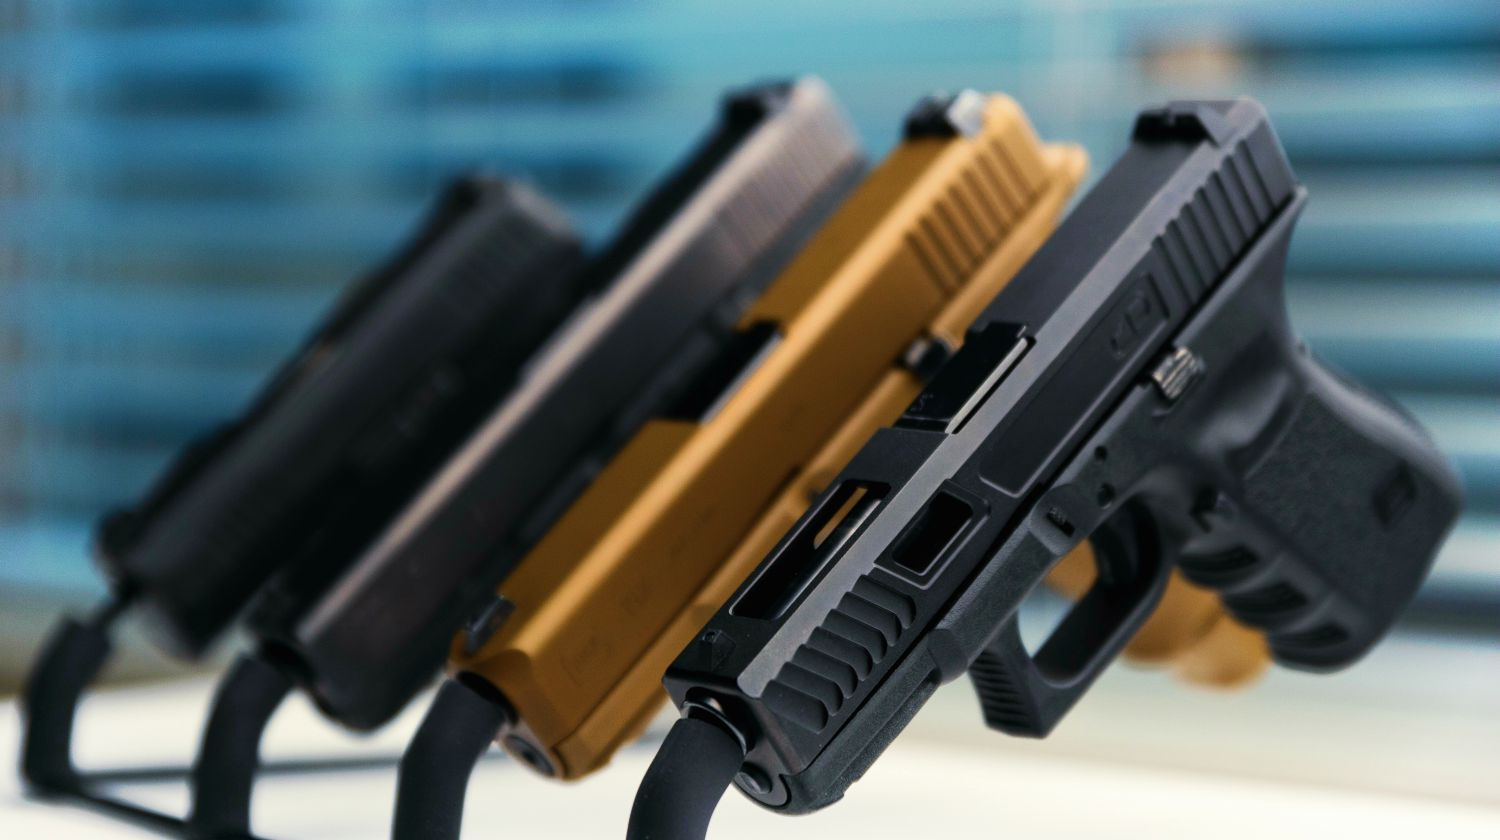 Feature | Gun rack with Glock 19, Glock 19x, Glock 17 and sig sauer p365 | Glock vs M&P vs XD: A Comparison